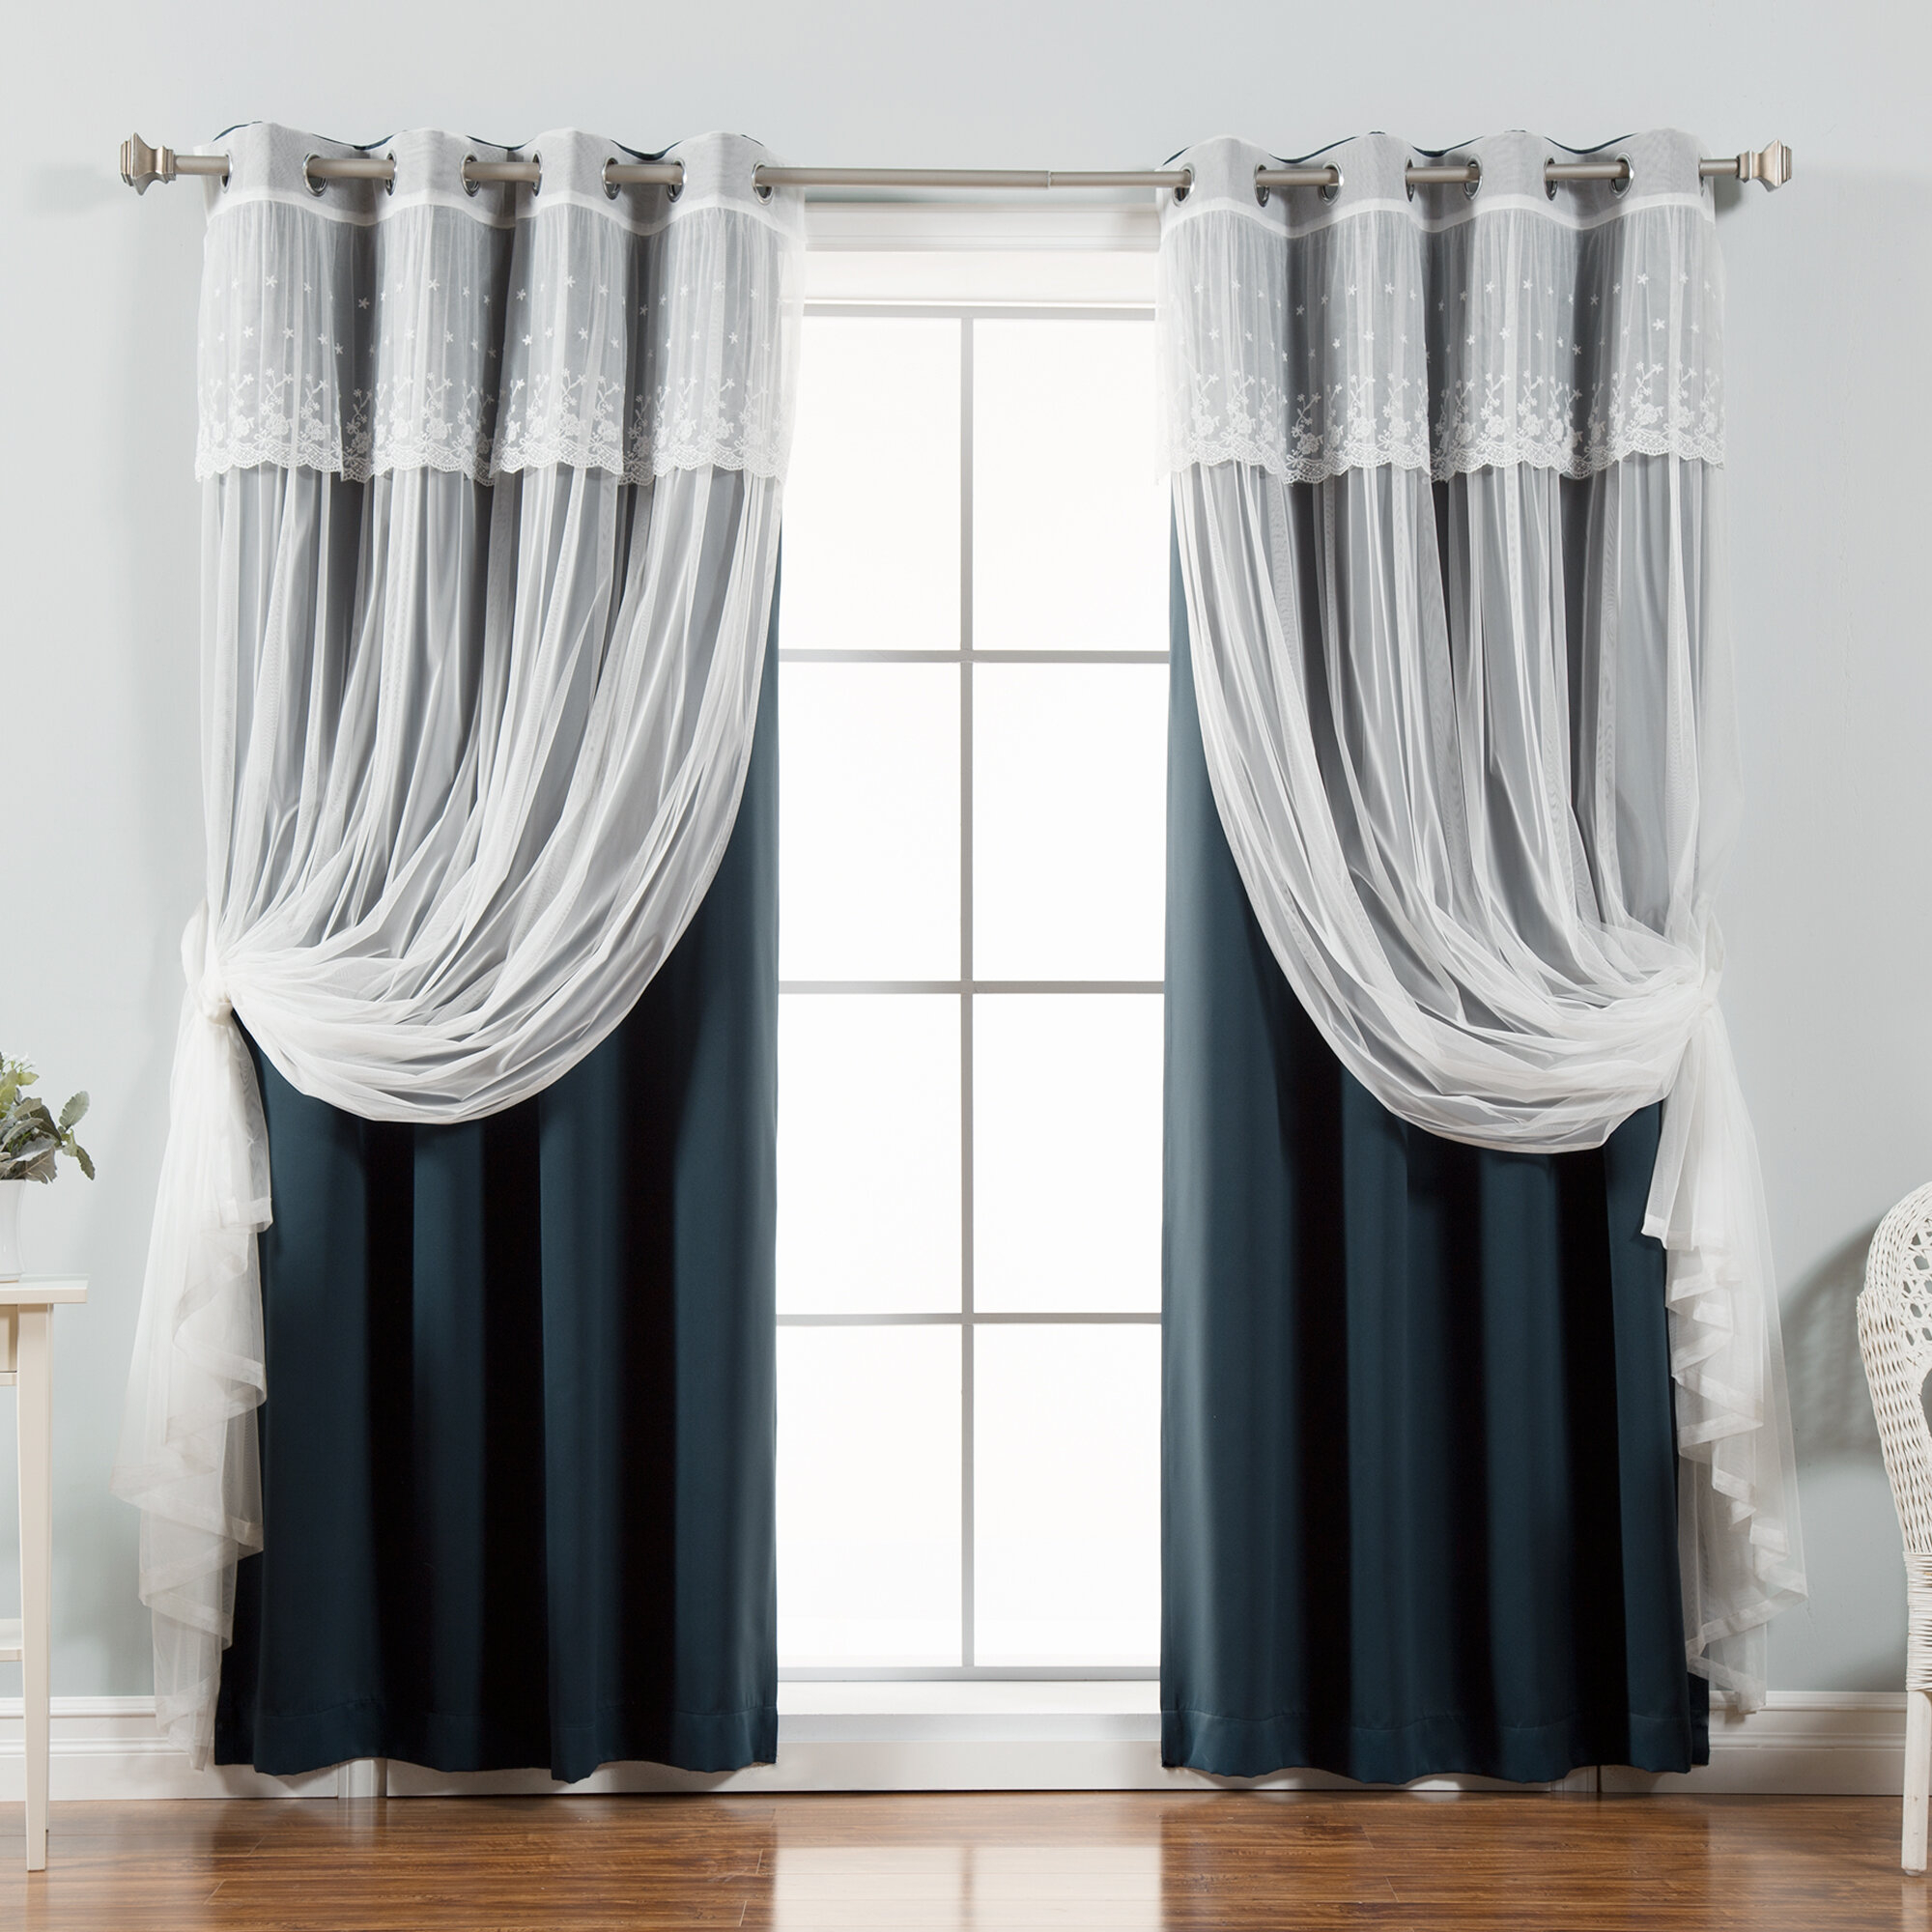 Crenshaw Solid Blackout Thermal Grommet Curtain Panels regarding Mix & Match Blackout Tulle Lace Bronze Grommet Curtain Panel Sets (Image 15 of 20)